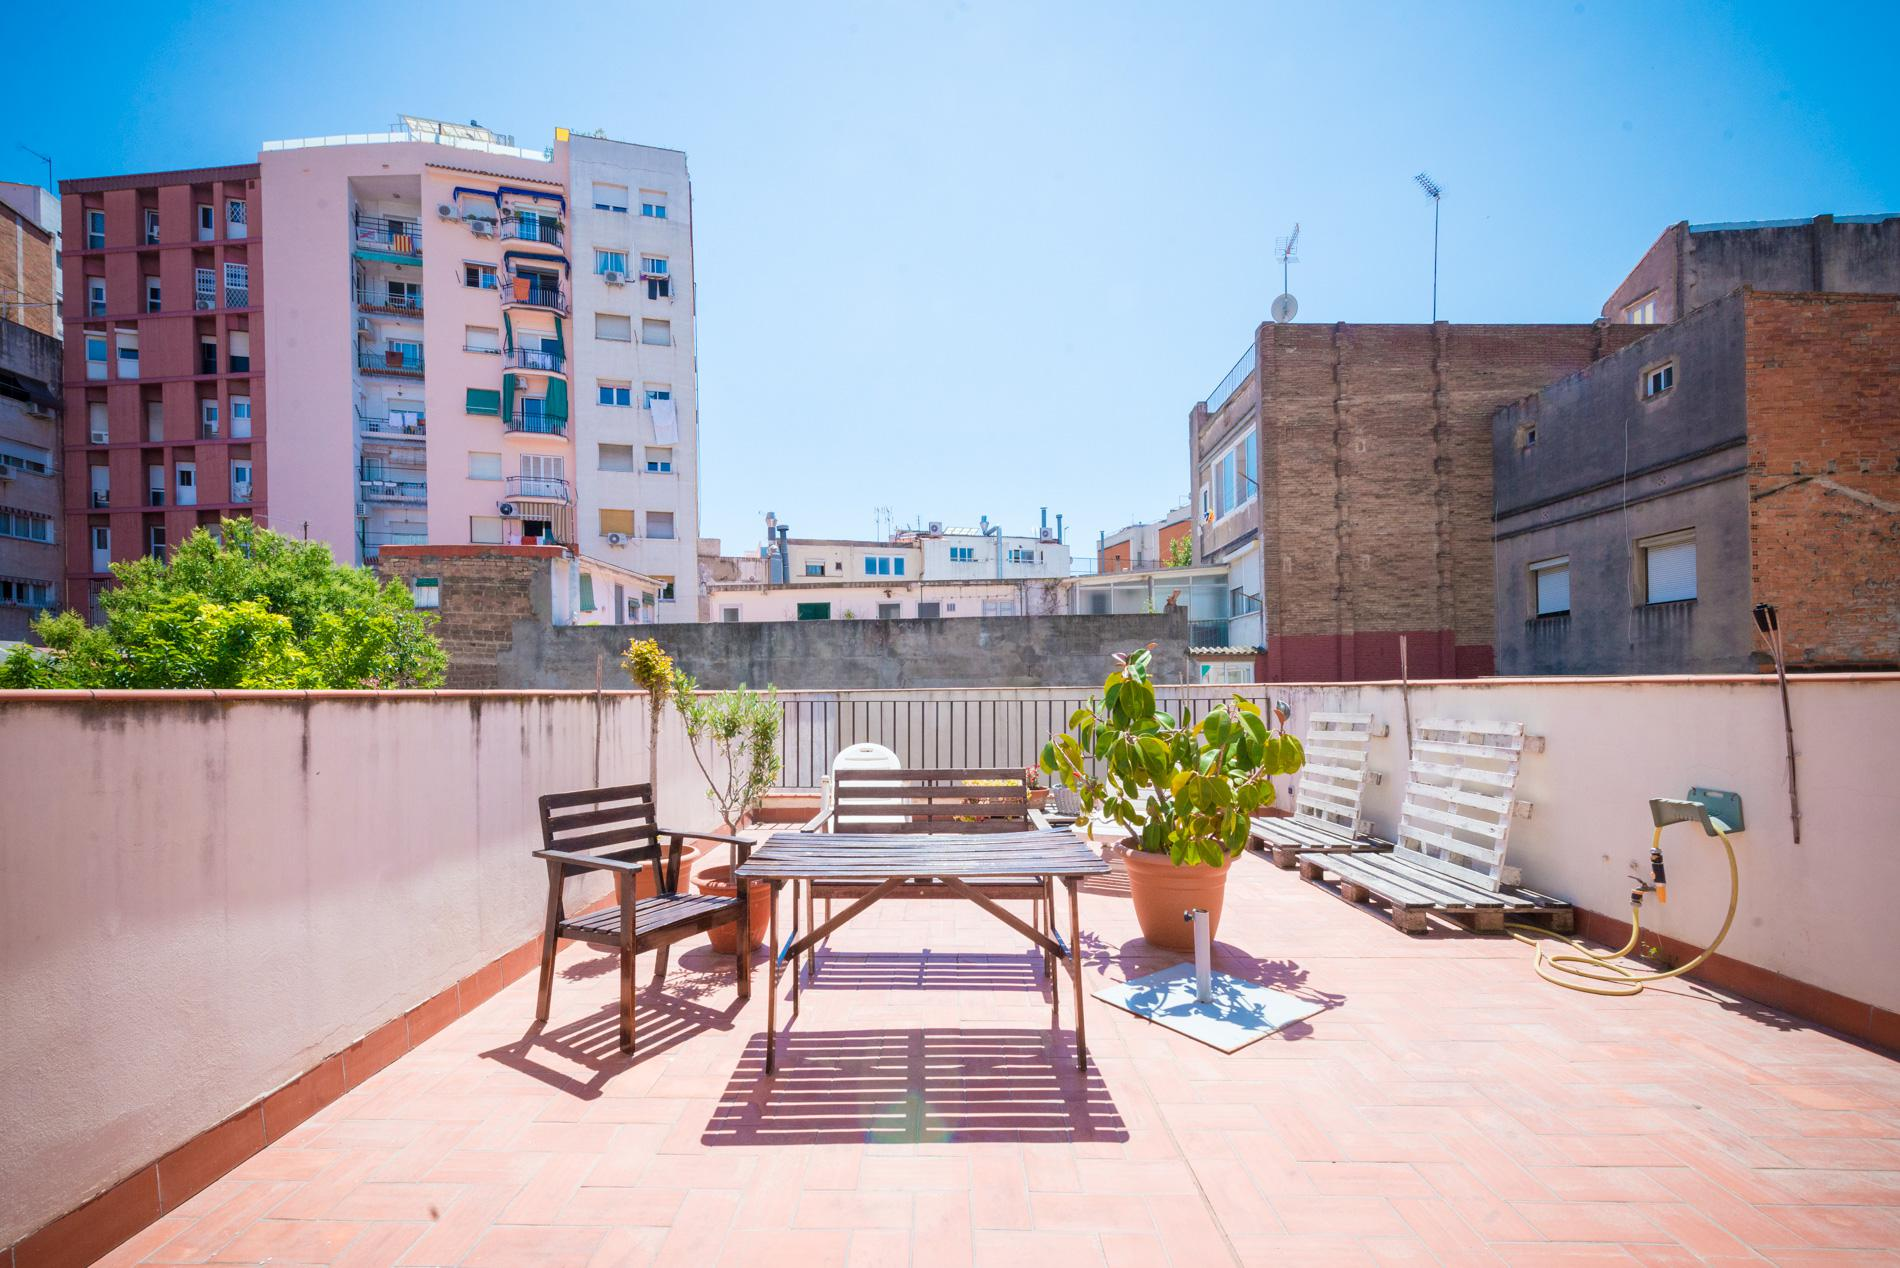 239277 Semi-detached house for sale in Sants-Montjuïc, Sants 11